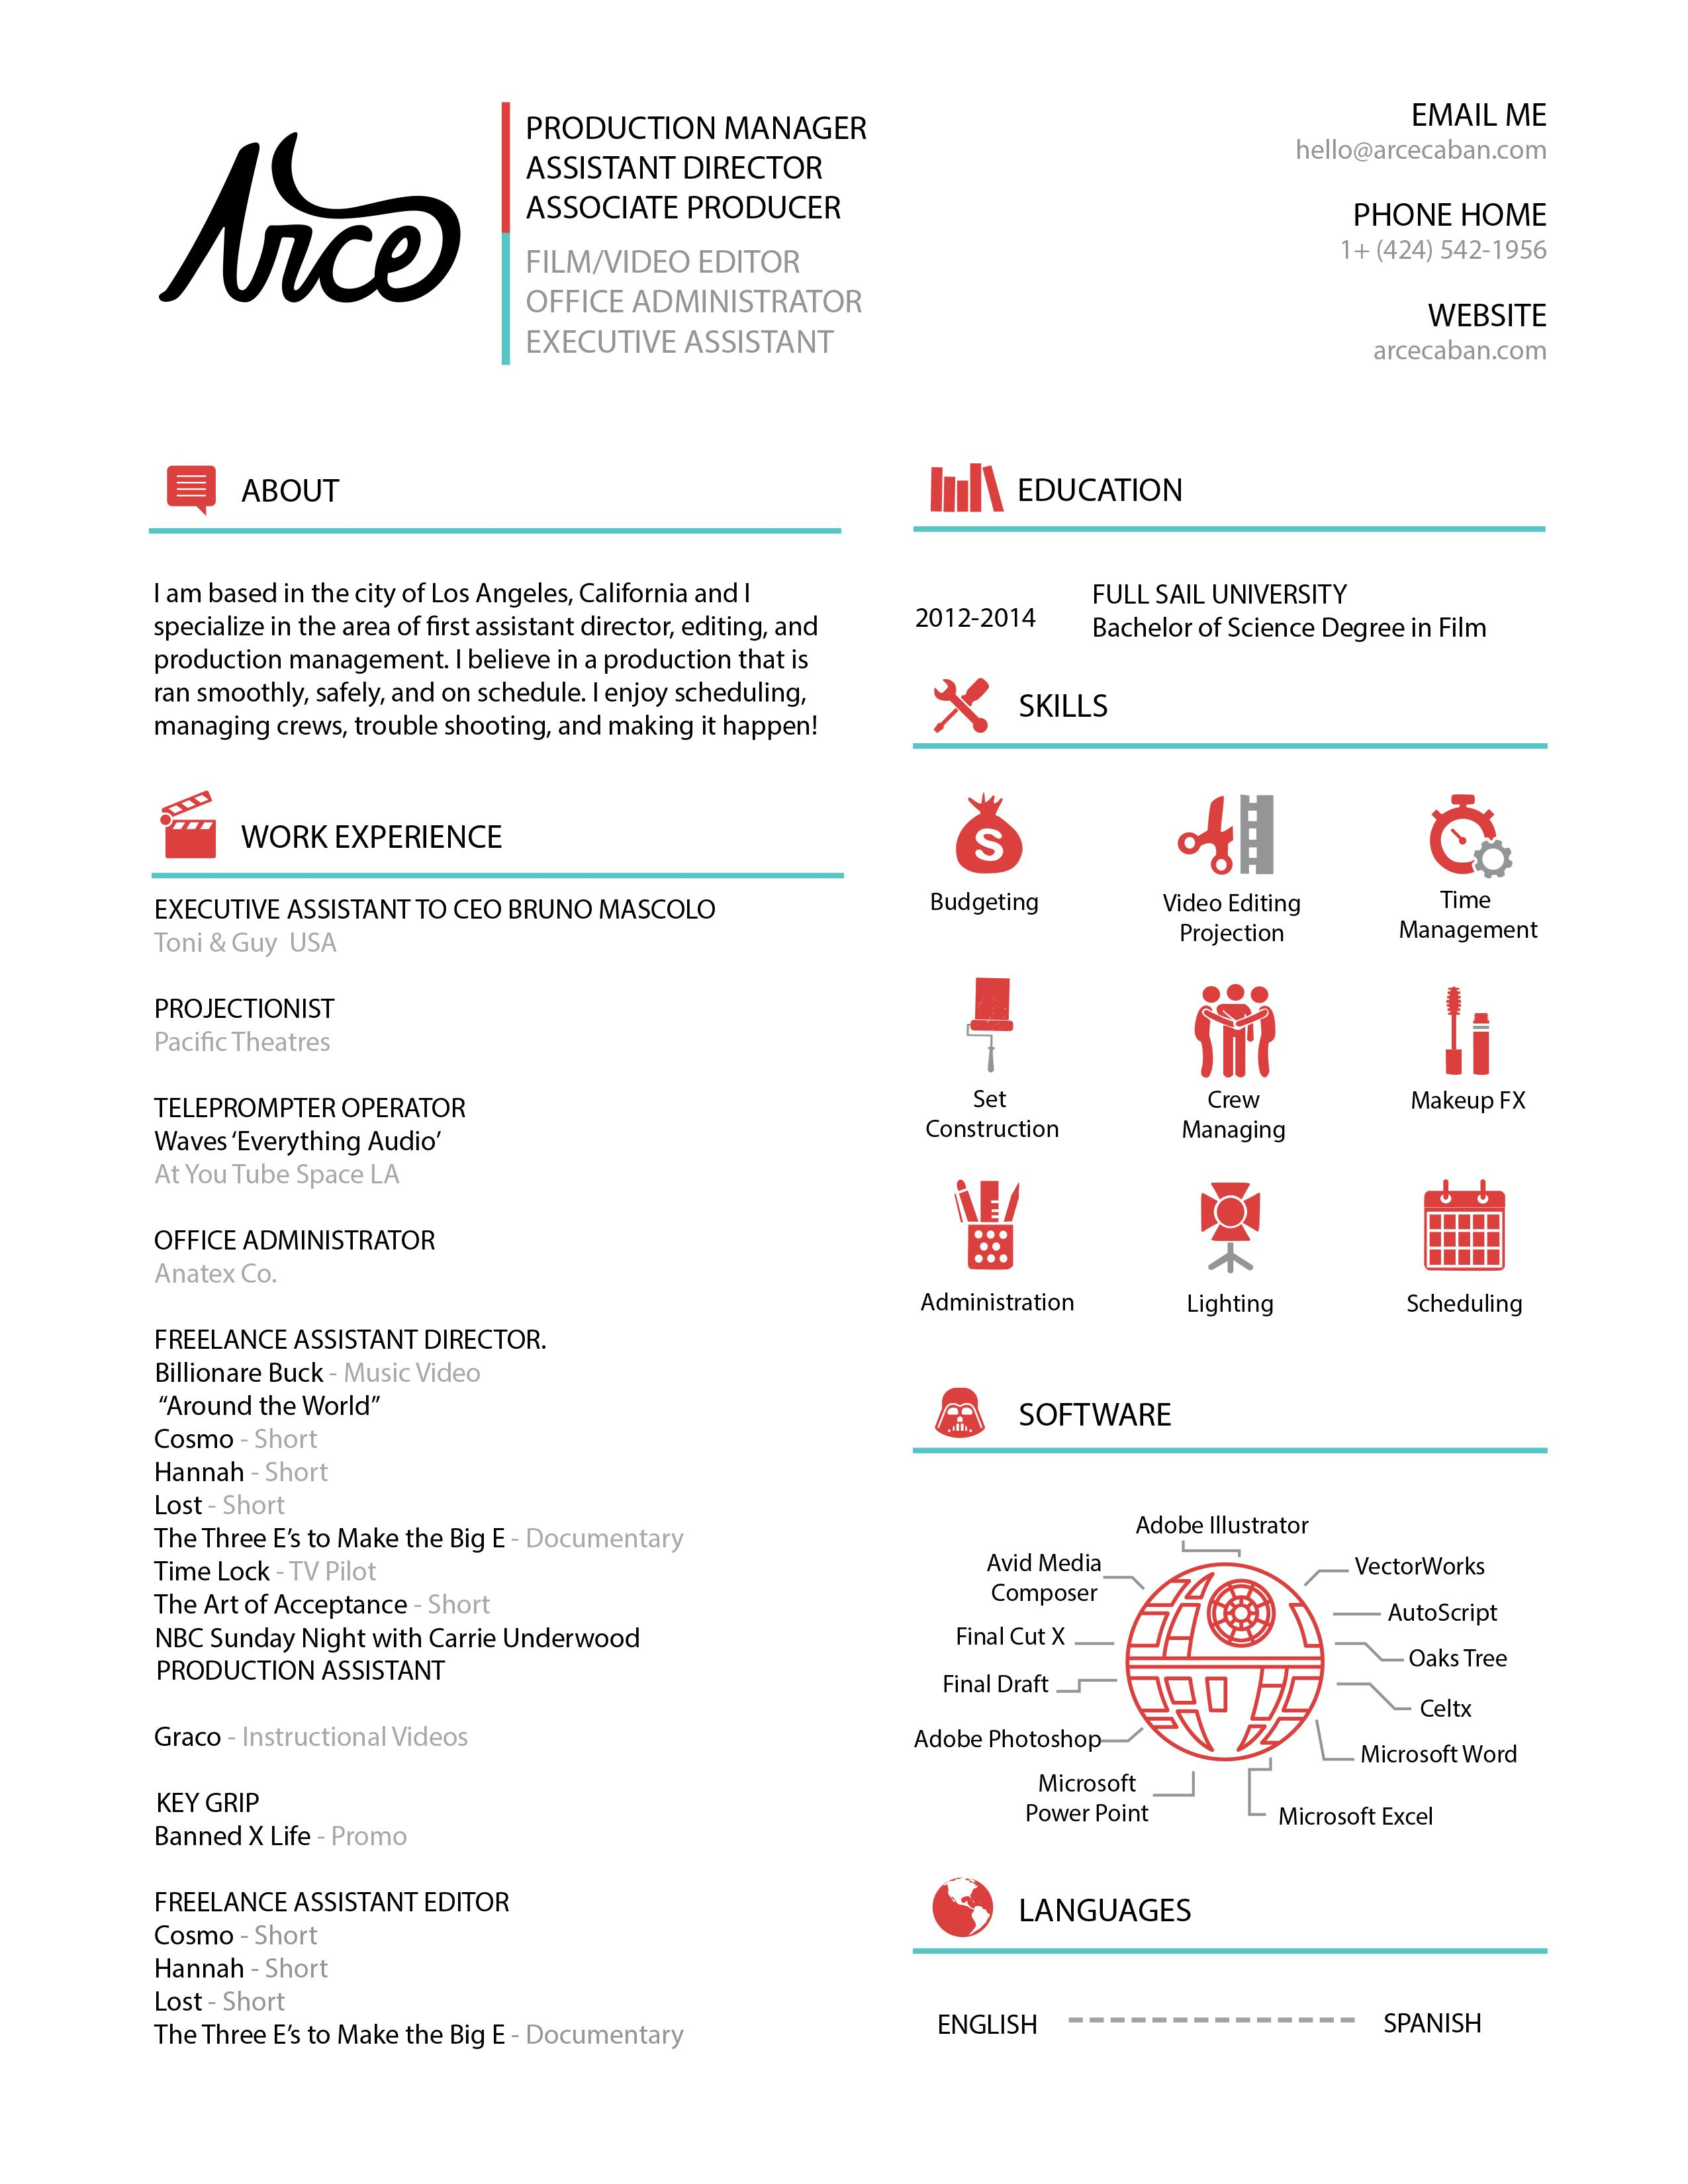 Filmmaker Clean And Creative Resume Resume Design Creative Resume Design Resume Layout